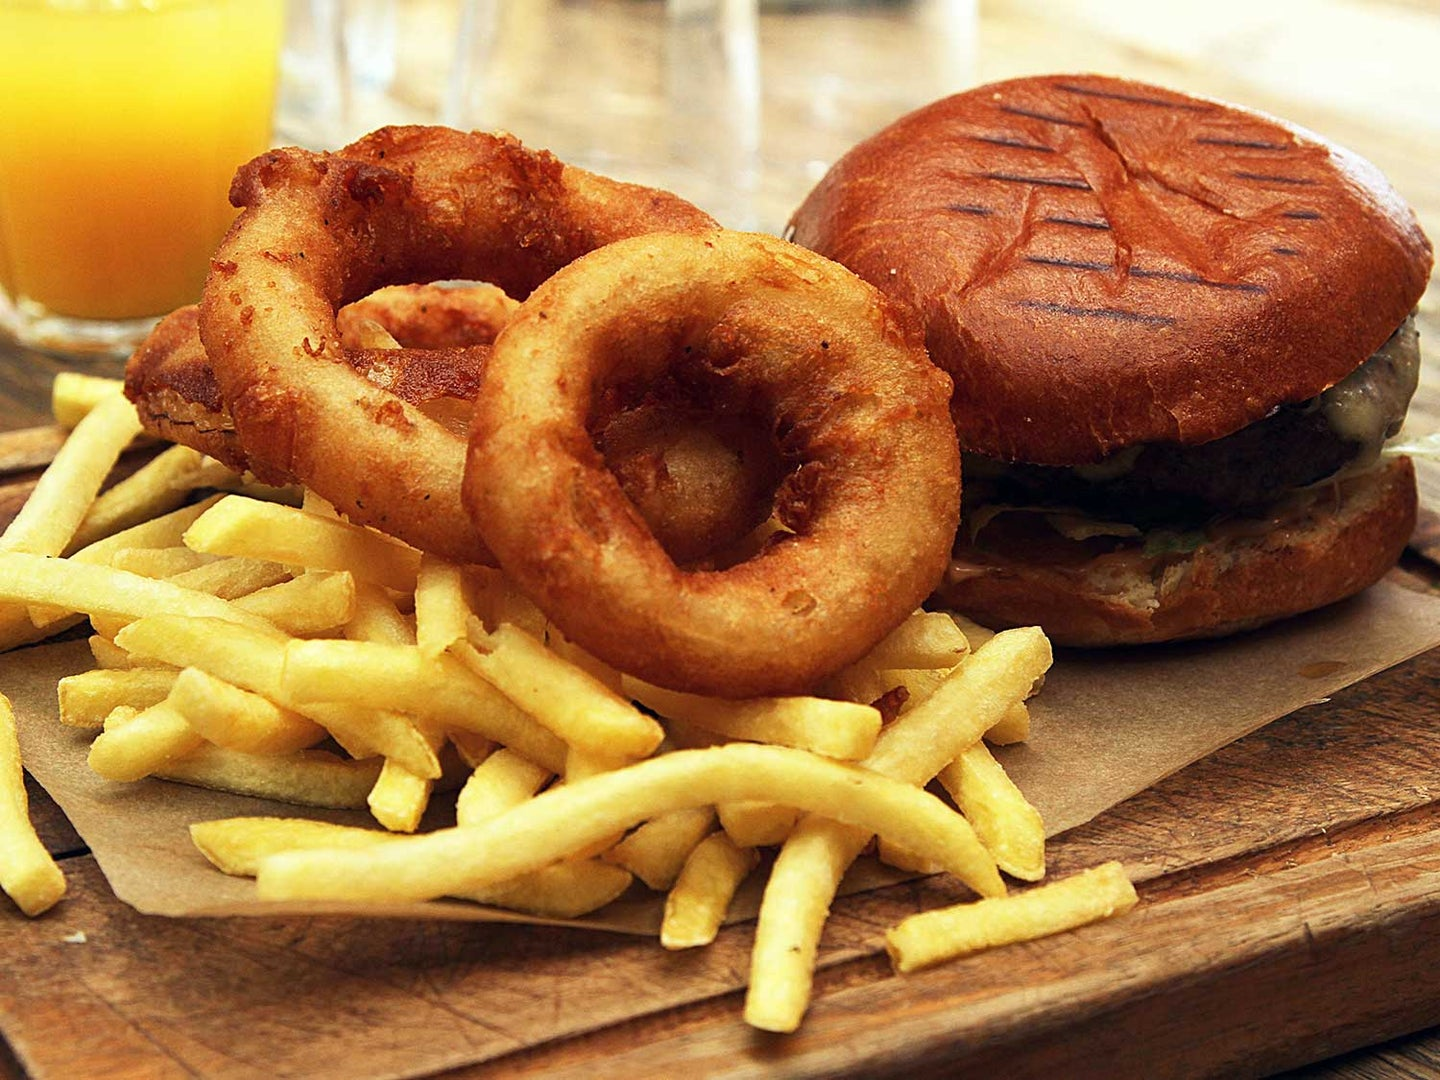 Burgers, fries, and onions rings